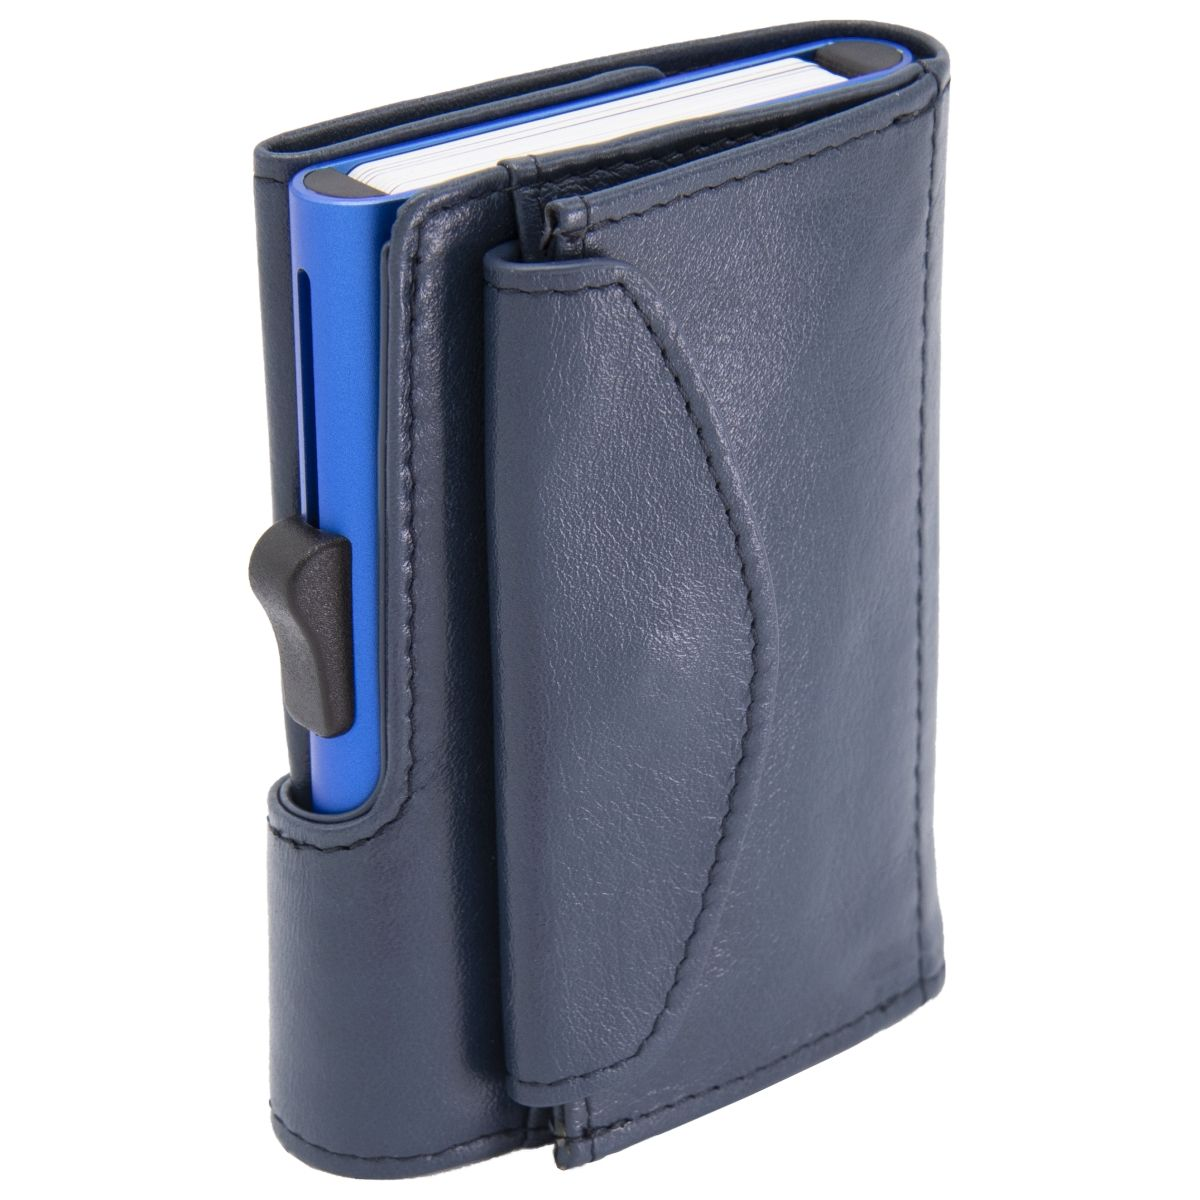 C-Secure XL Aluminum Card Holder with Genuine Leather and Coins Pocket - Blue